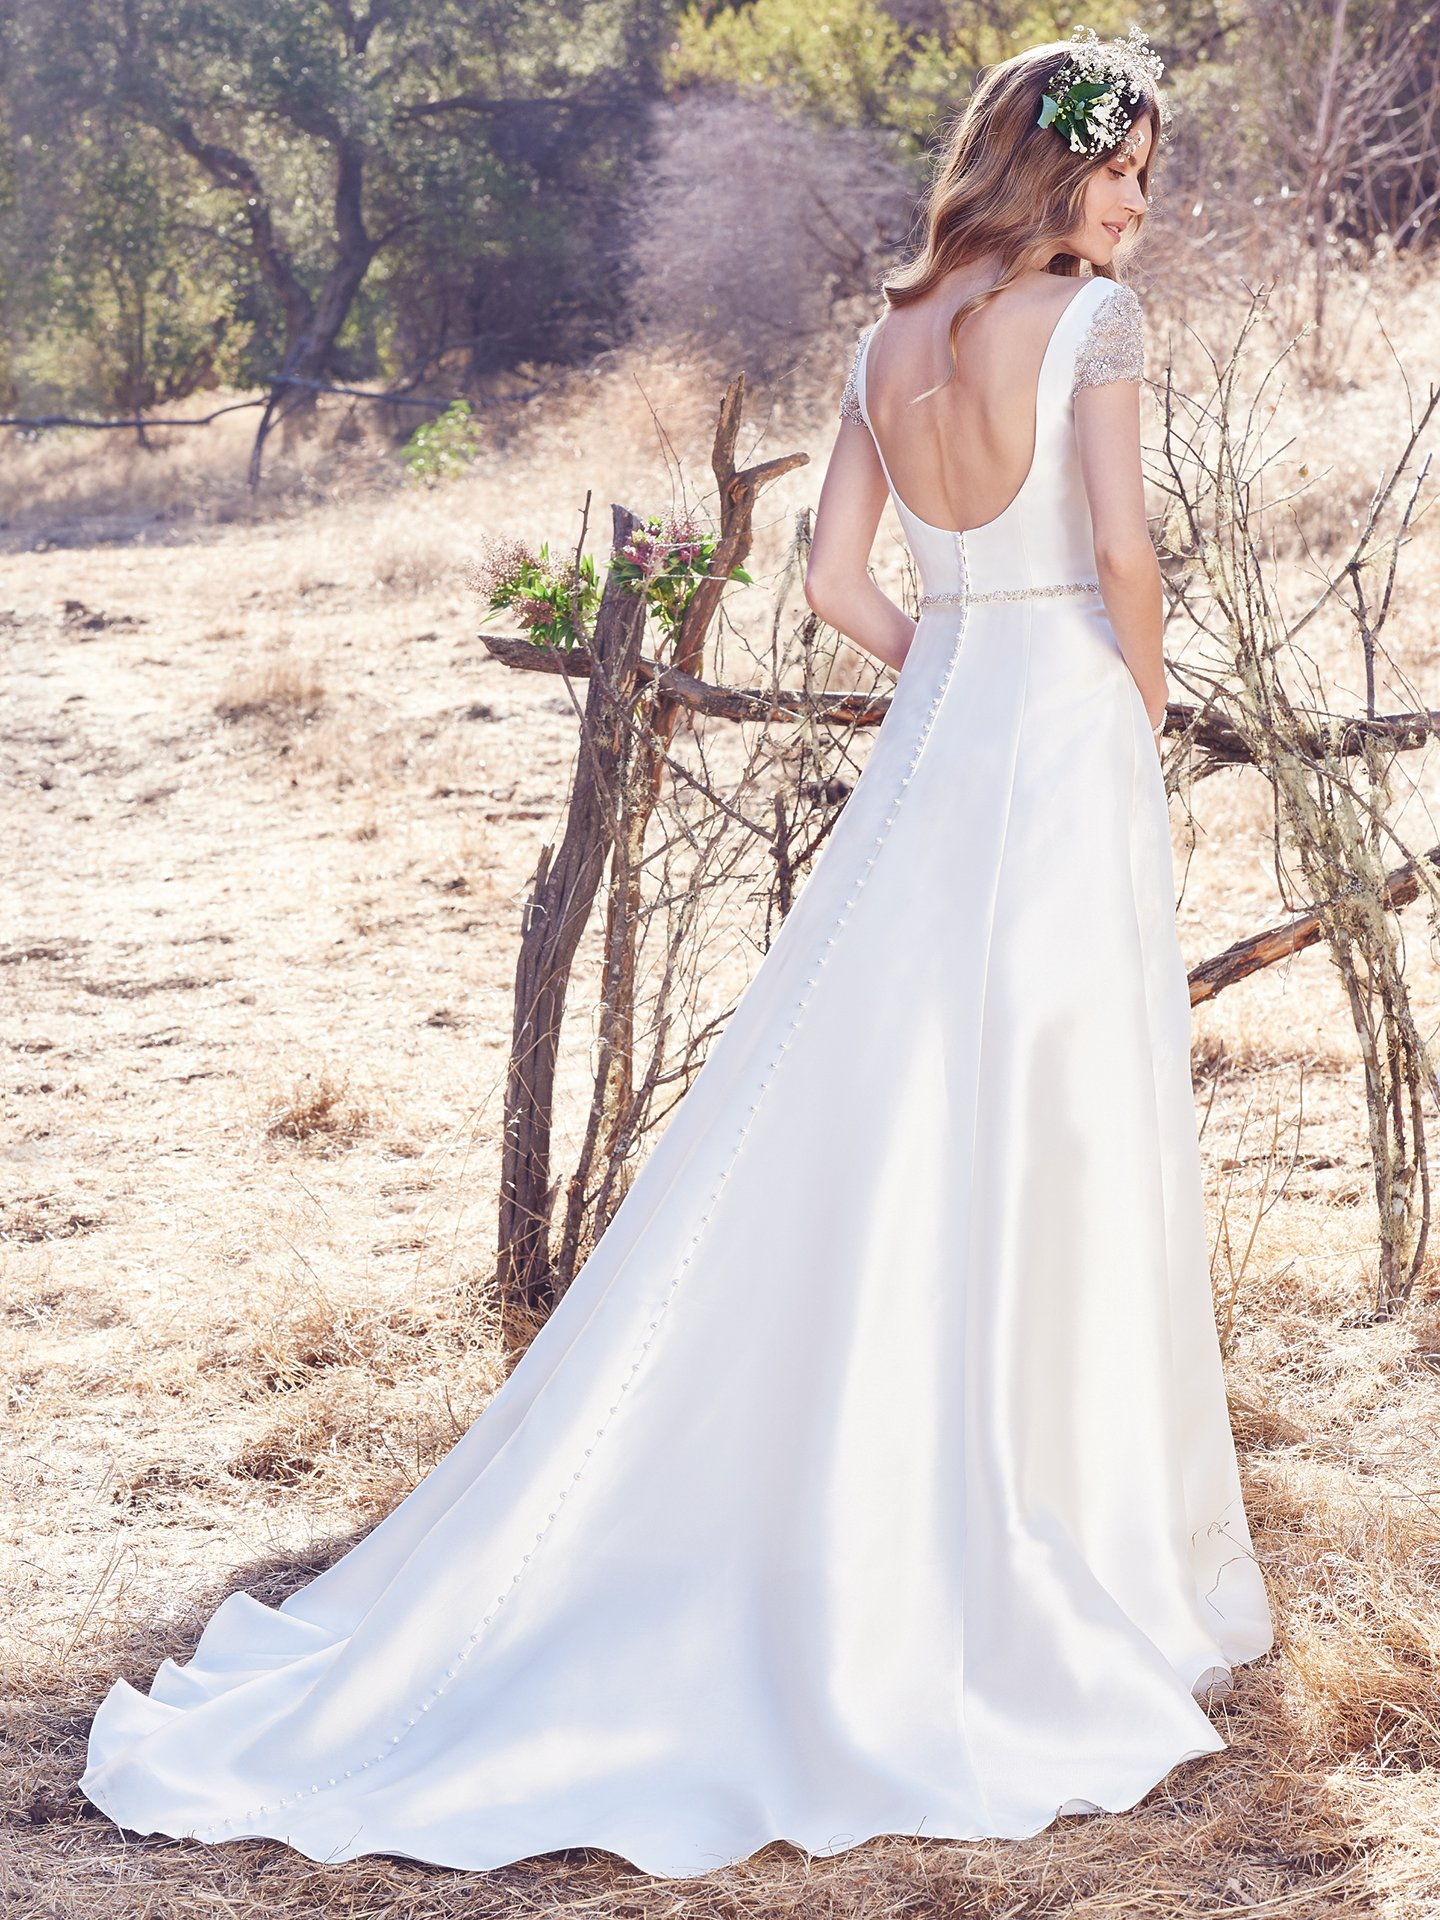 Beaded cap-sleeves and dazzling beaded belt with Swarovski crystals add opulence to this simple yet elegant Yaron Mikado A-line wedding dress, featuring a bateau neckline and scoop back. Wedding Dresses With Beaded Cap Sleeves